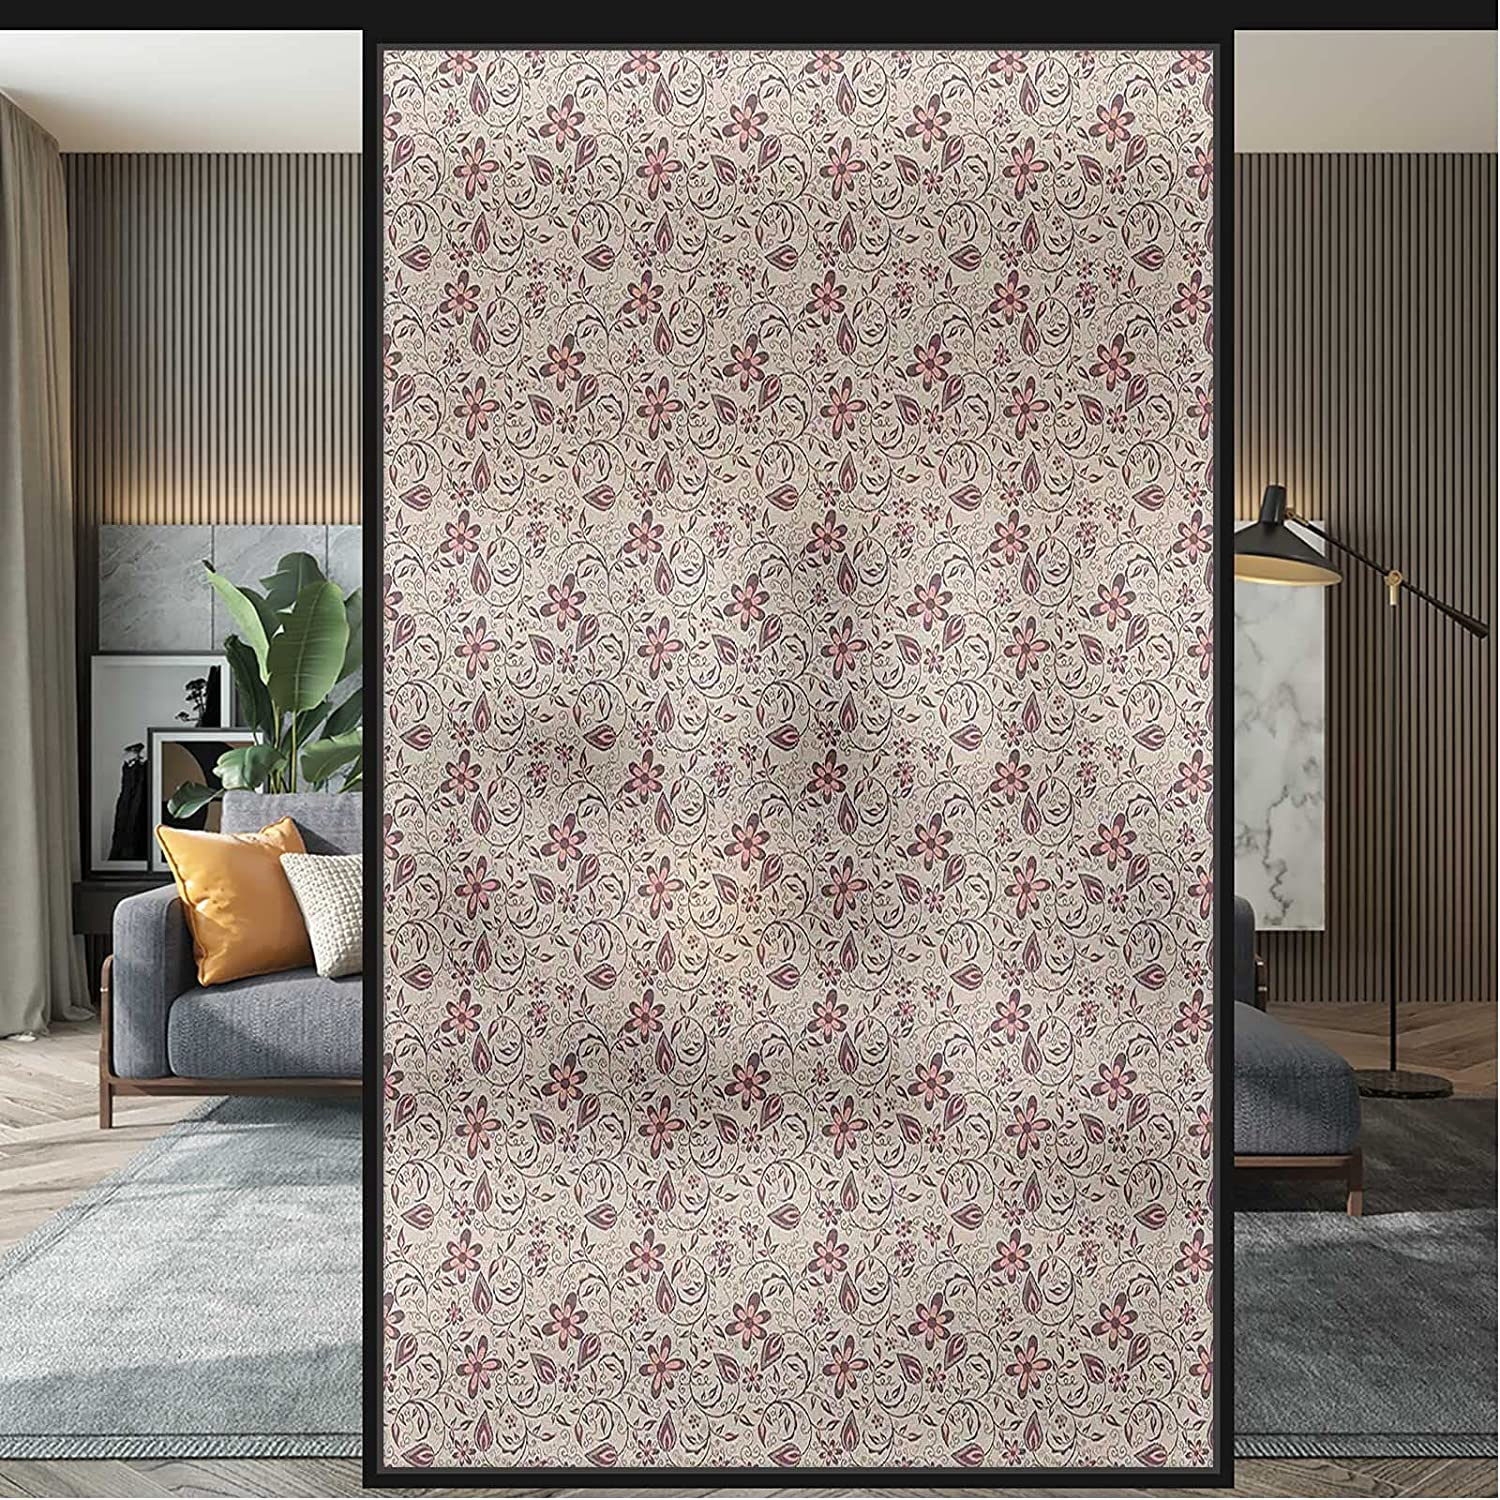 Today's Product only UV Window Film Retro Ornate Glass Wi Decoration Privacy Blossoms